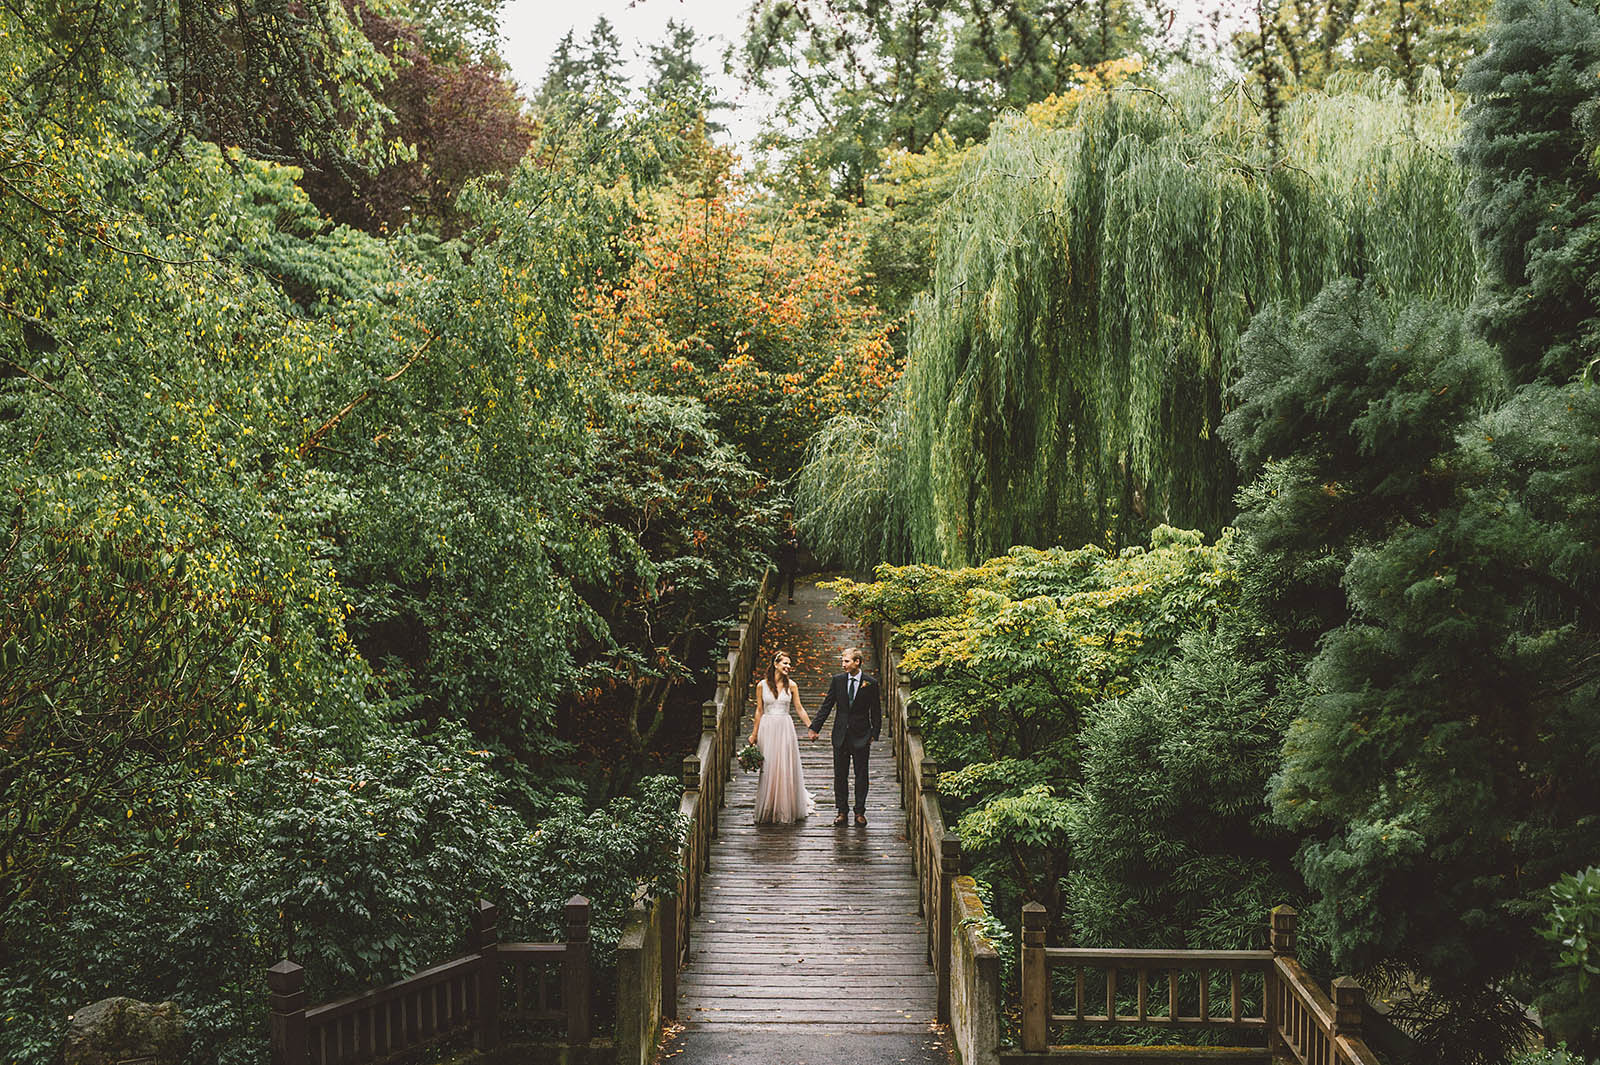 Portraits of Bride and Groom on the bridge at Crystal Springs Rhododendron Garden